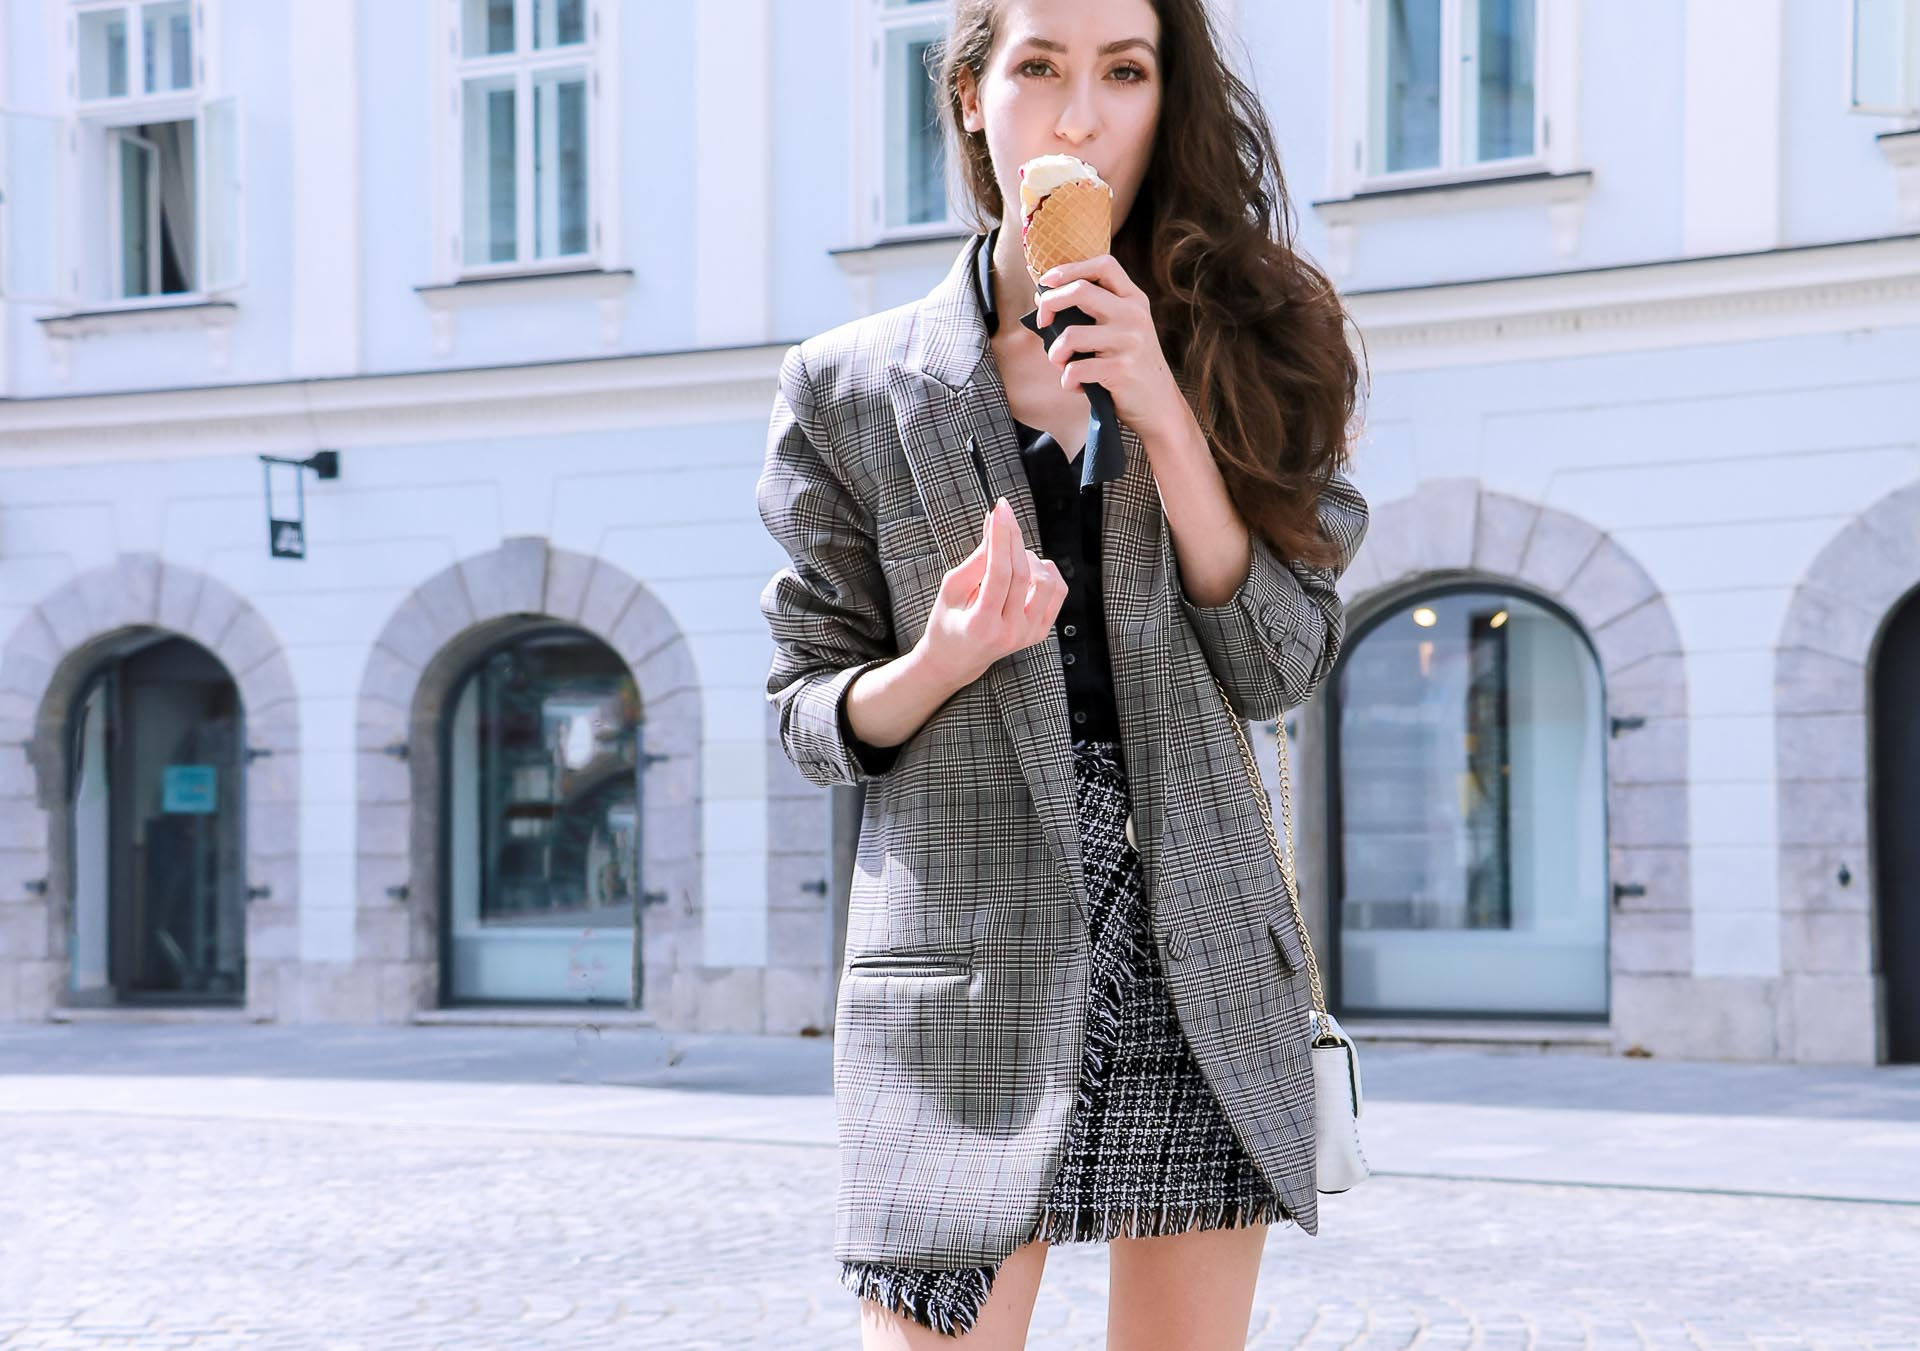 Fashion Blogger Veronika Lipar of Brunette from Wall Street wearing Erika Cavallini oversized boyfriend checked blazer with short tweed black and white mini skirt from streets, and white chain strap shoulder bag while eating ice cream